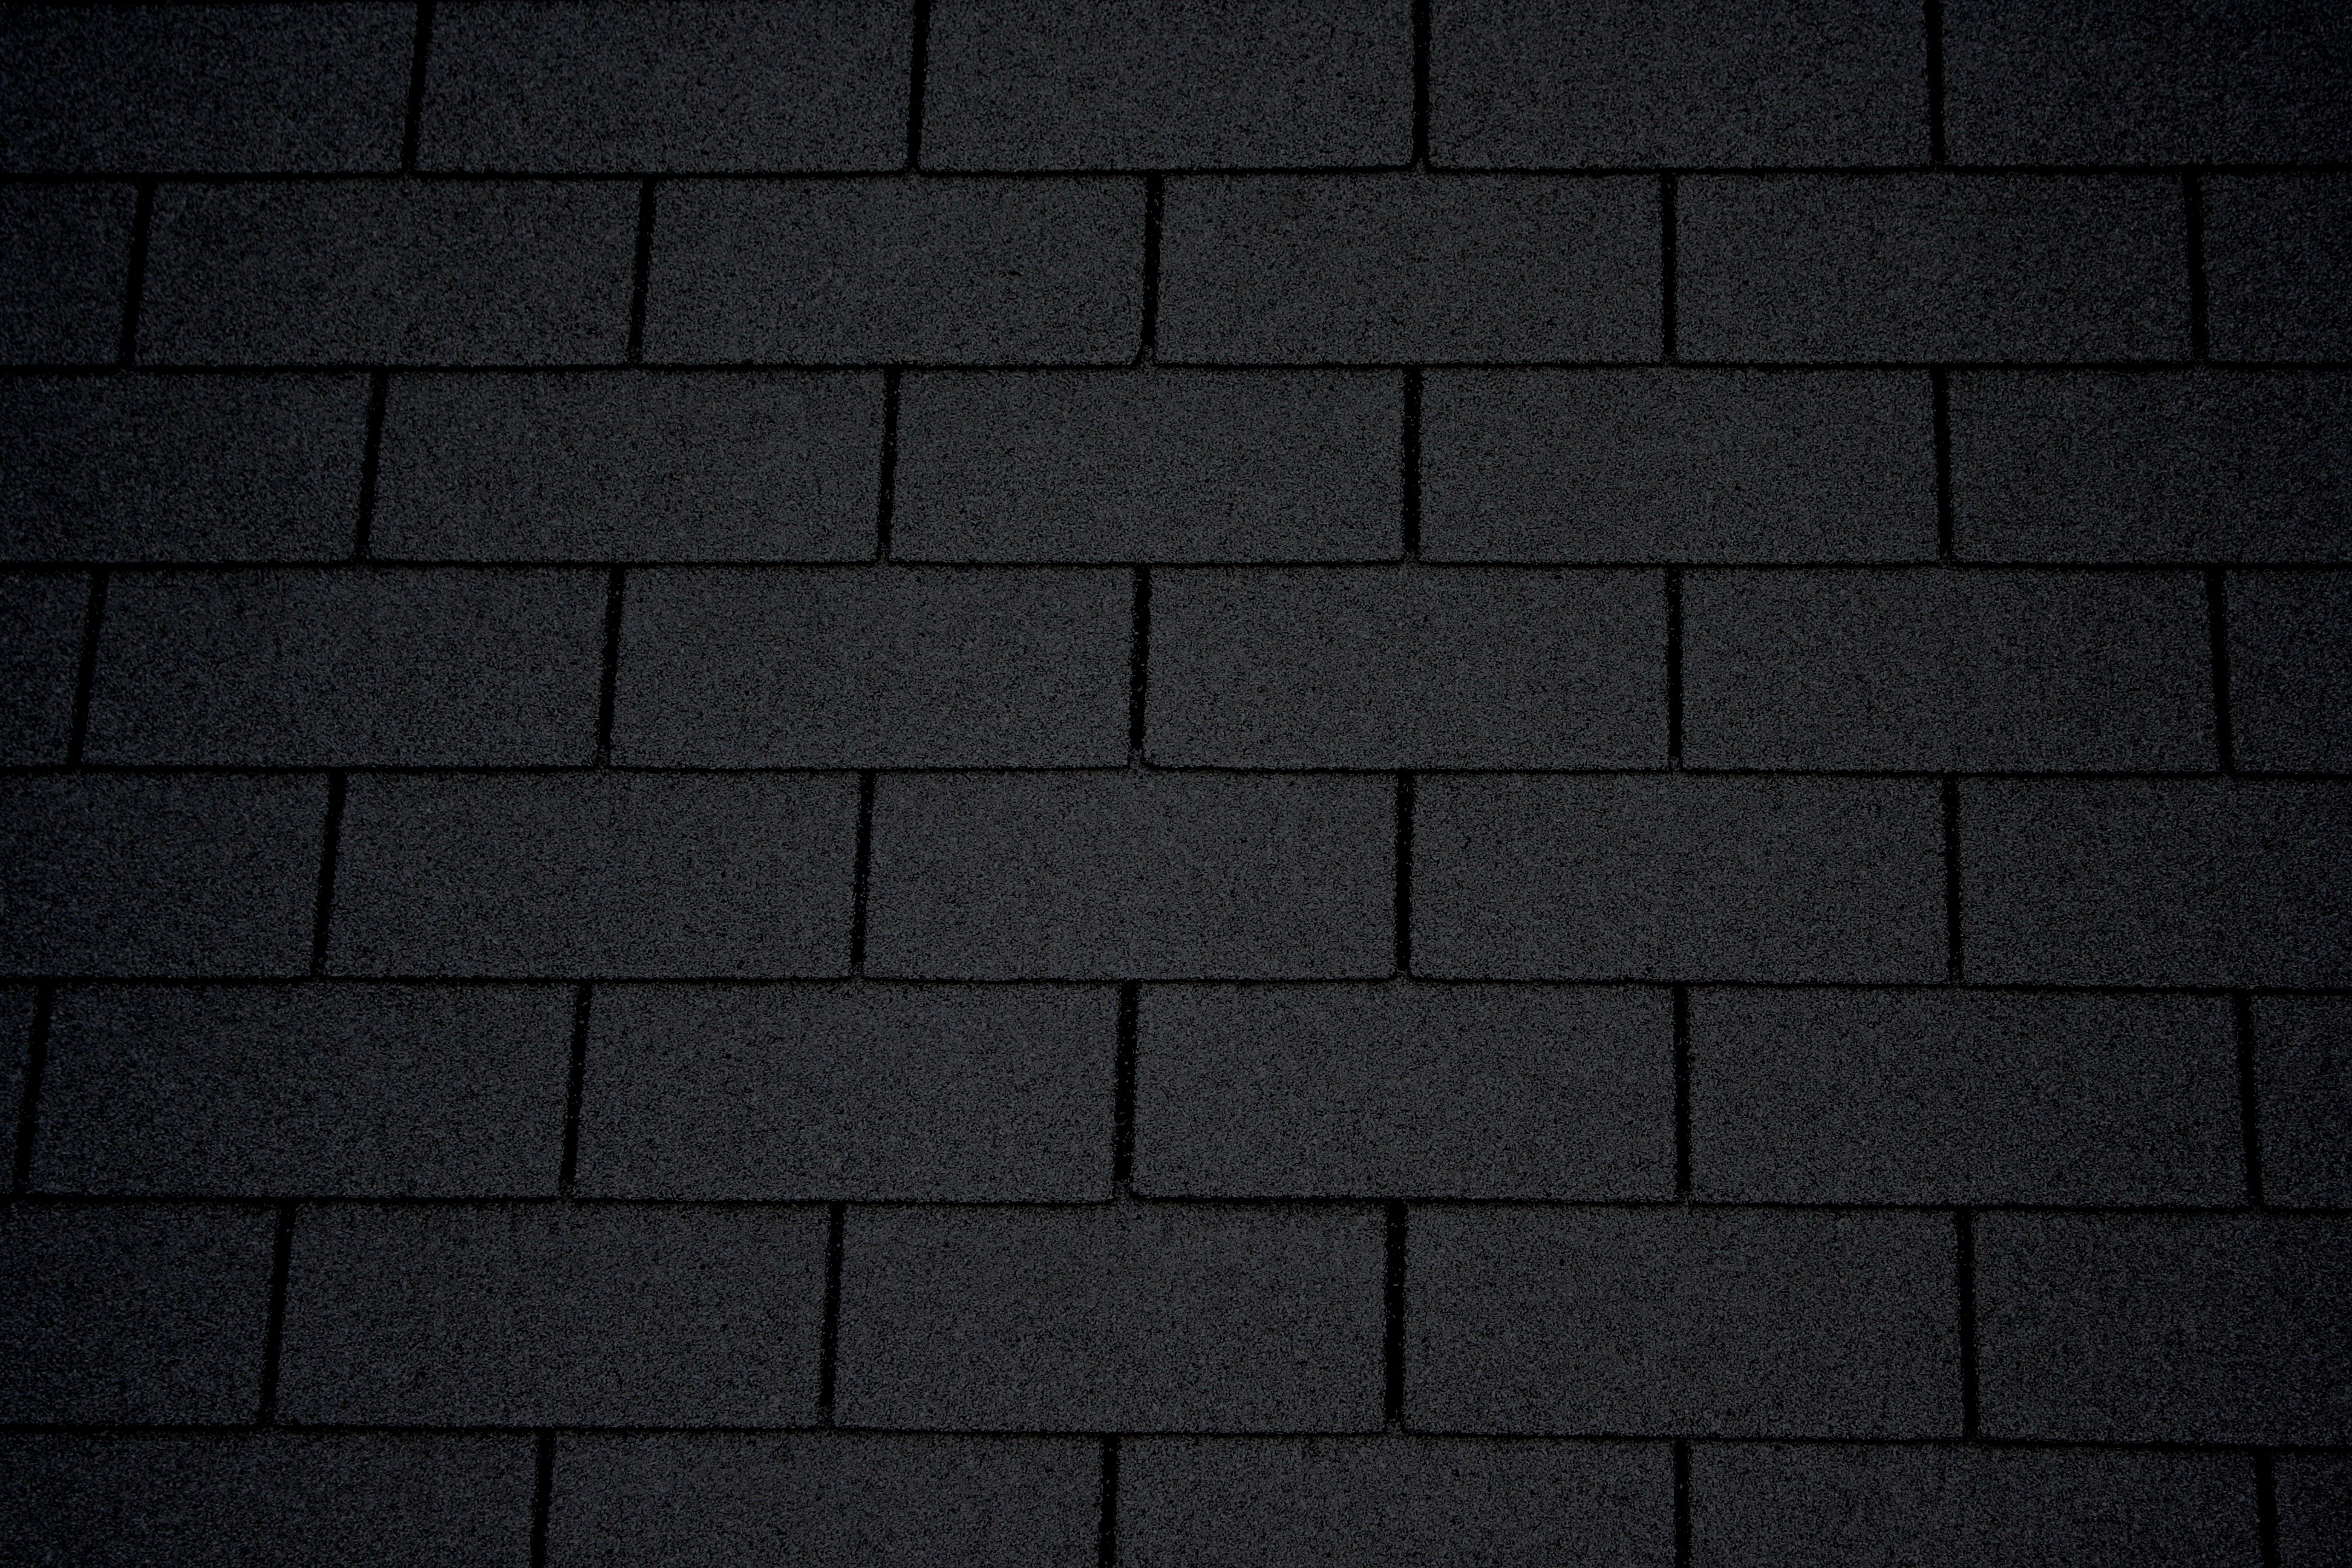 Dark Textures clipart high resolution Shingles Shingles Roof Charcoal Picture